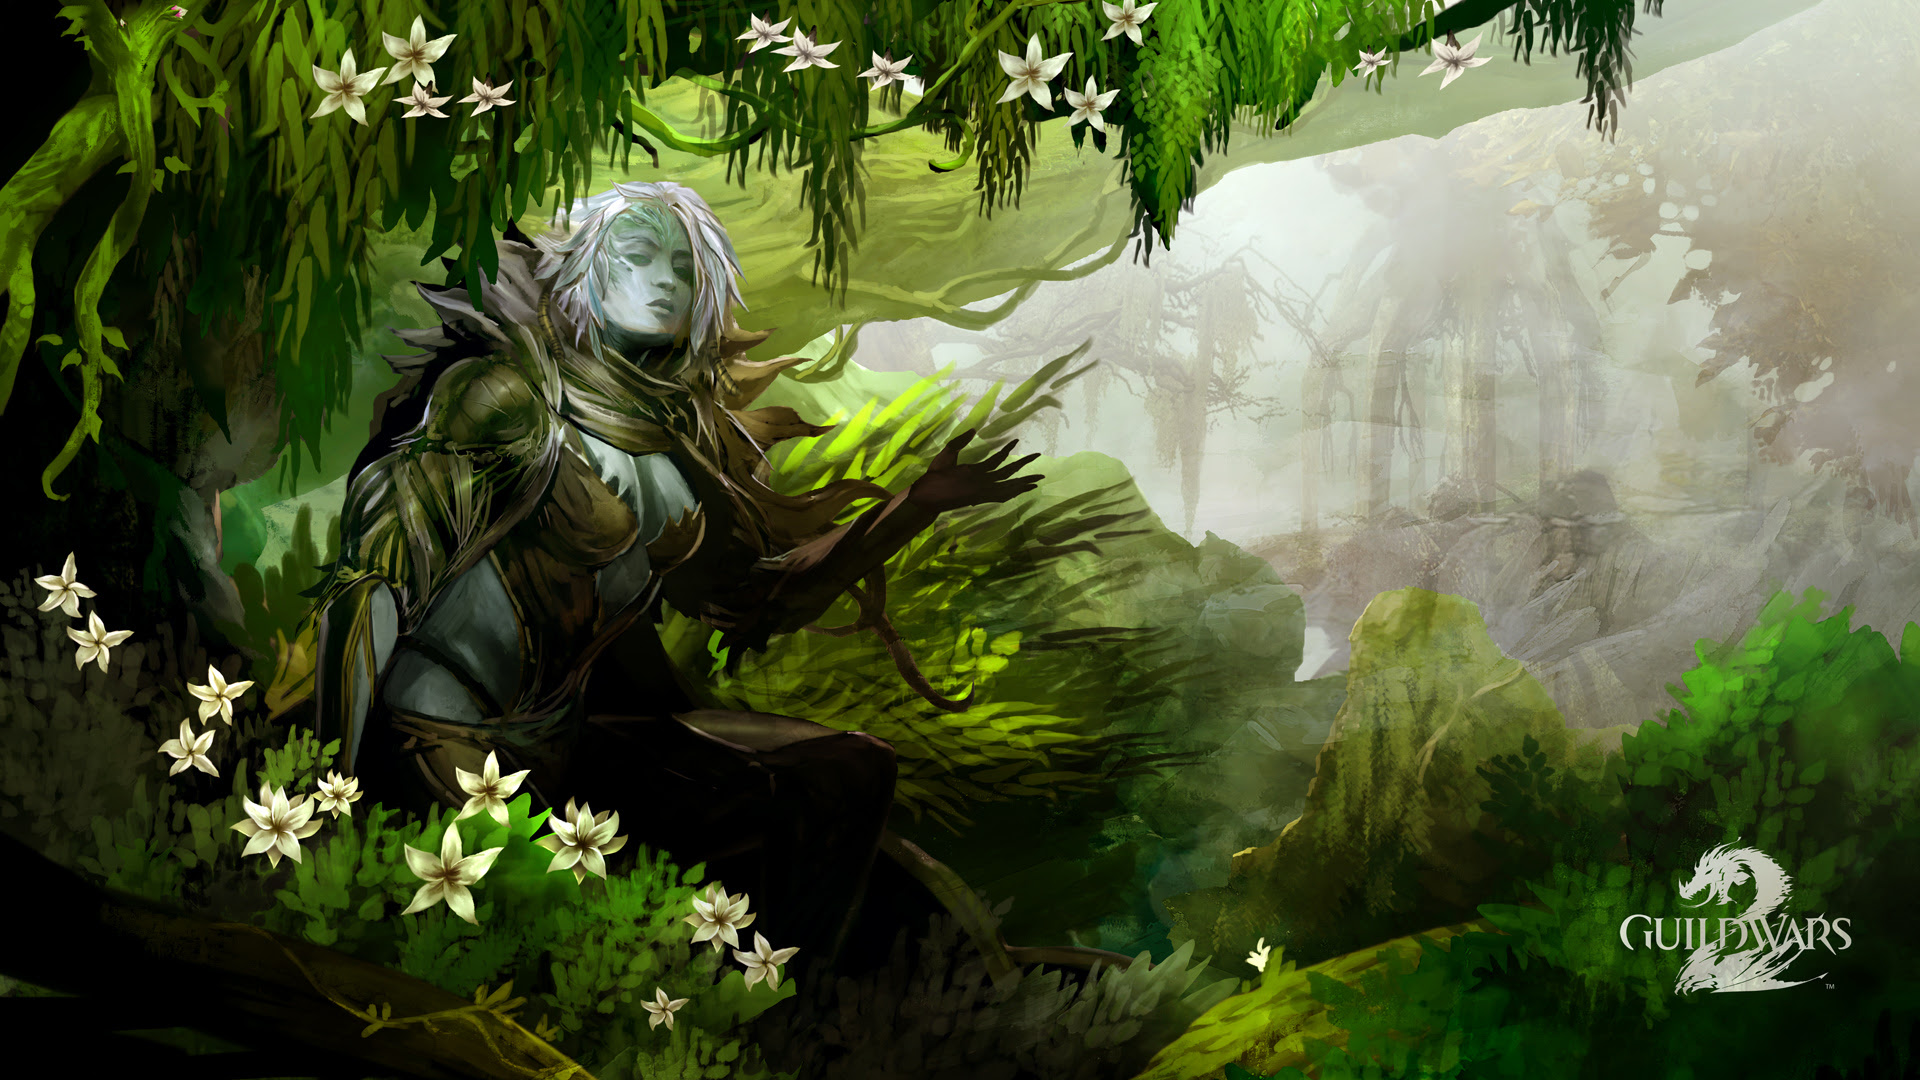 Guild Wars 2 Wallpapers Best Wallpapers